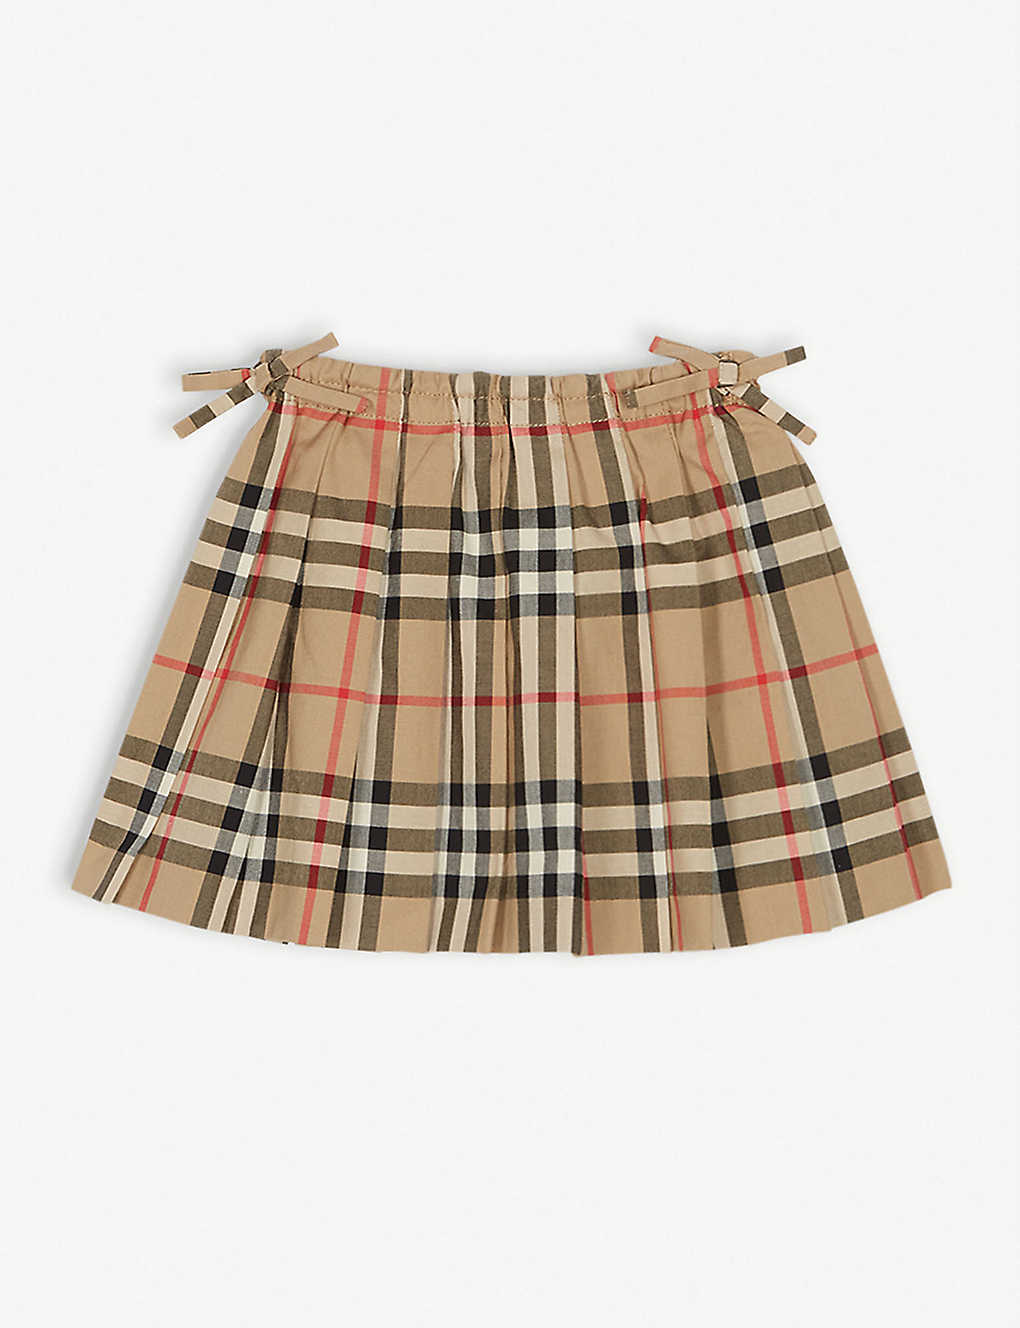 BURBERRY: Pearly pleated skirt 6 months - 2 years